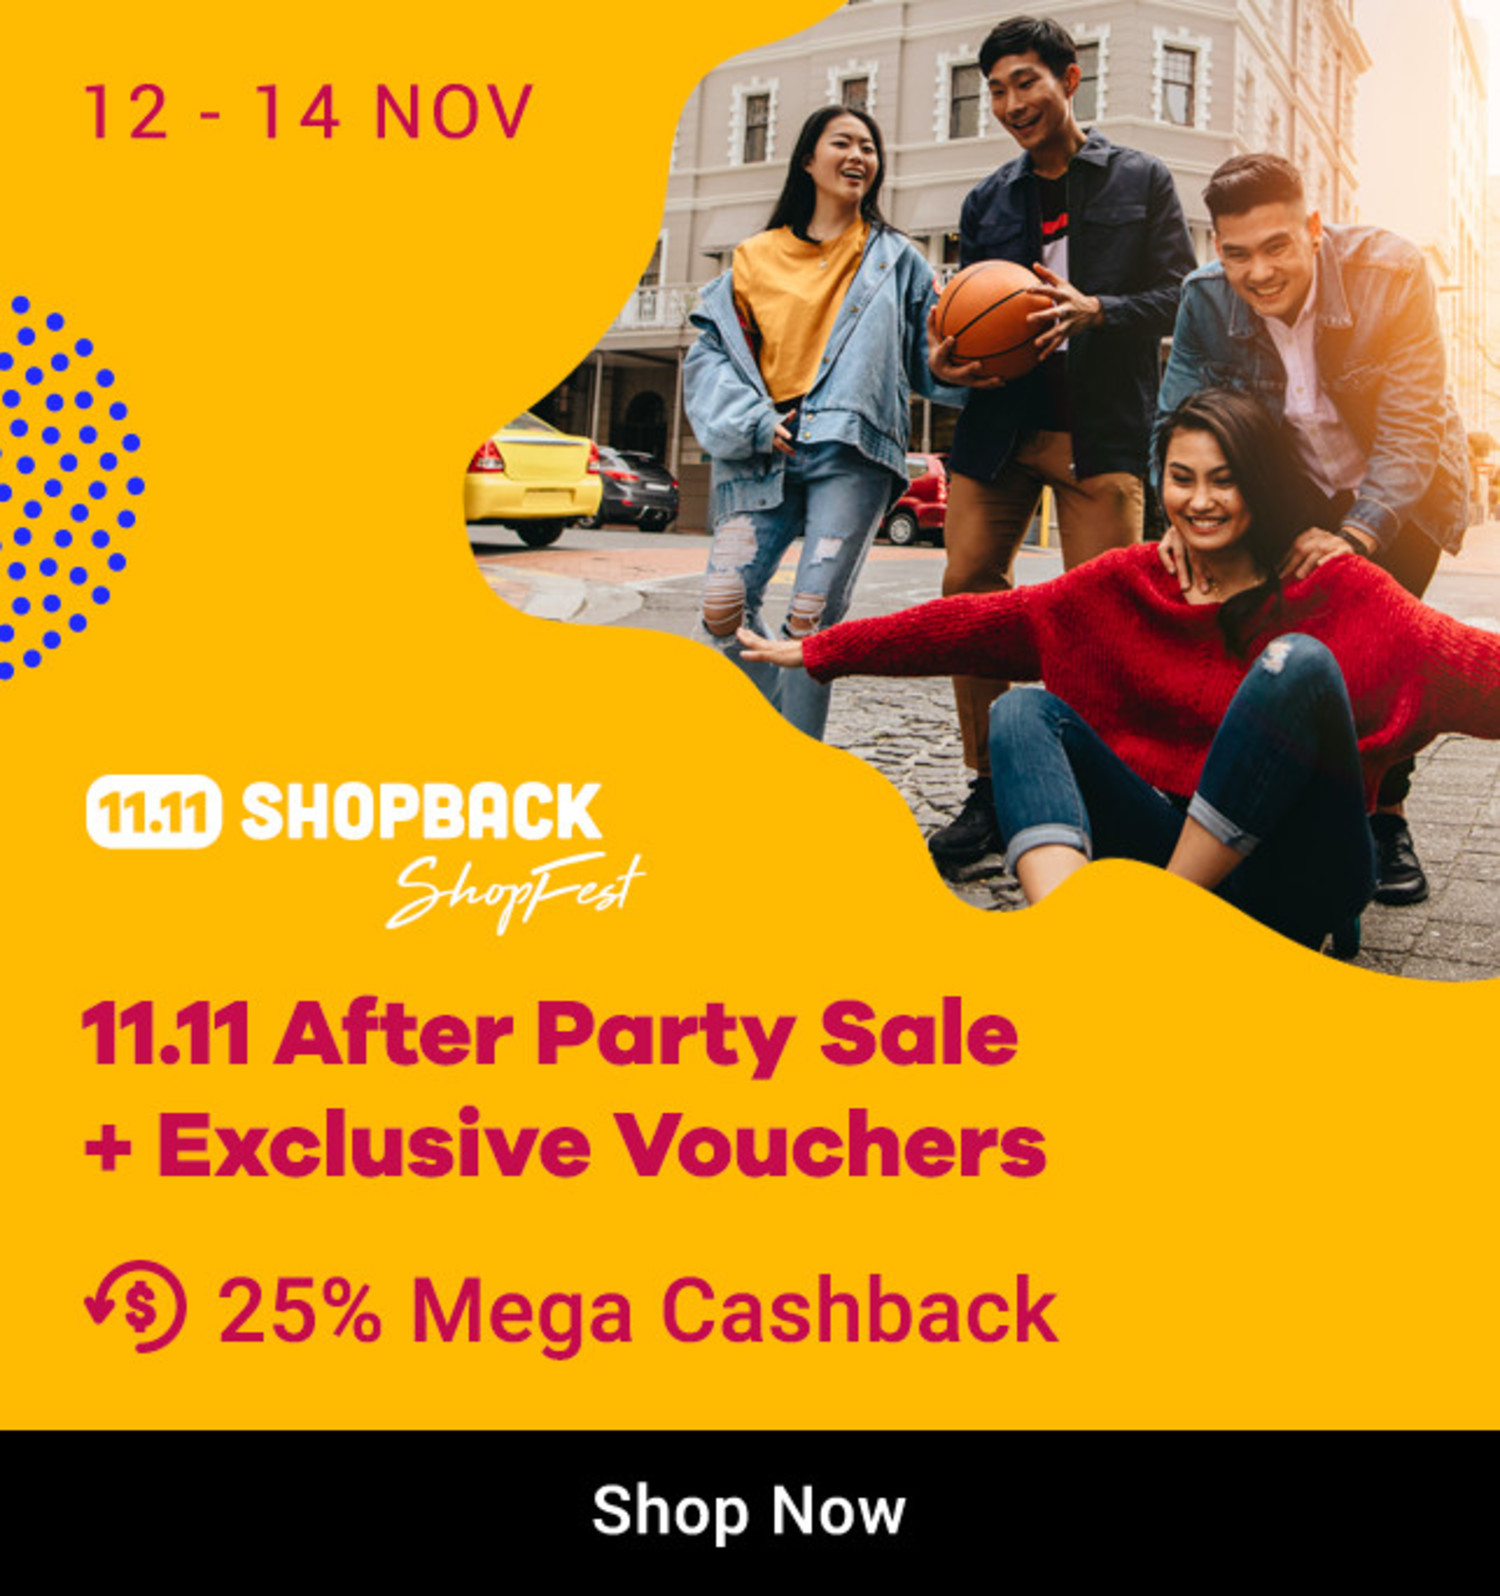 11.11 After Party Sale + Exclusicve Vouchers